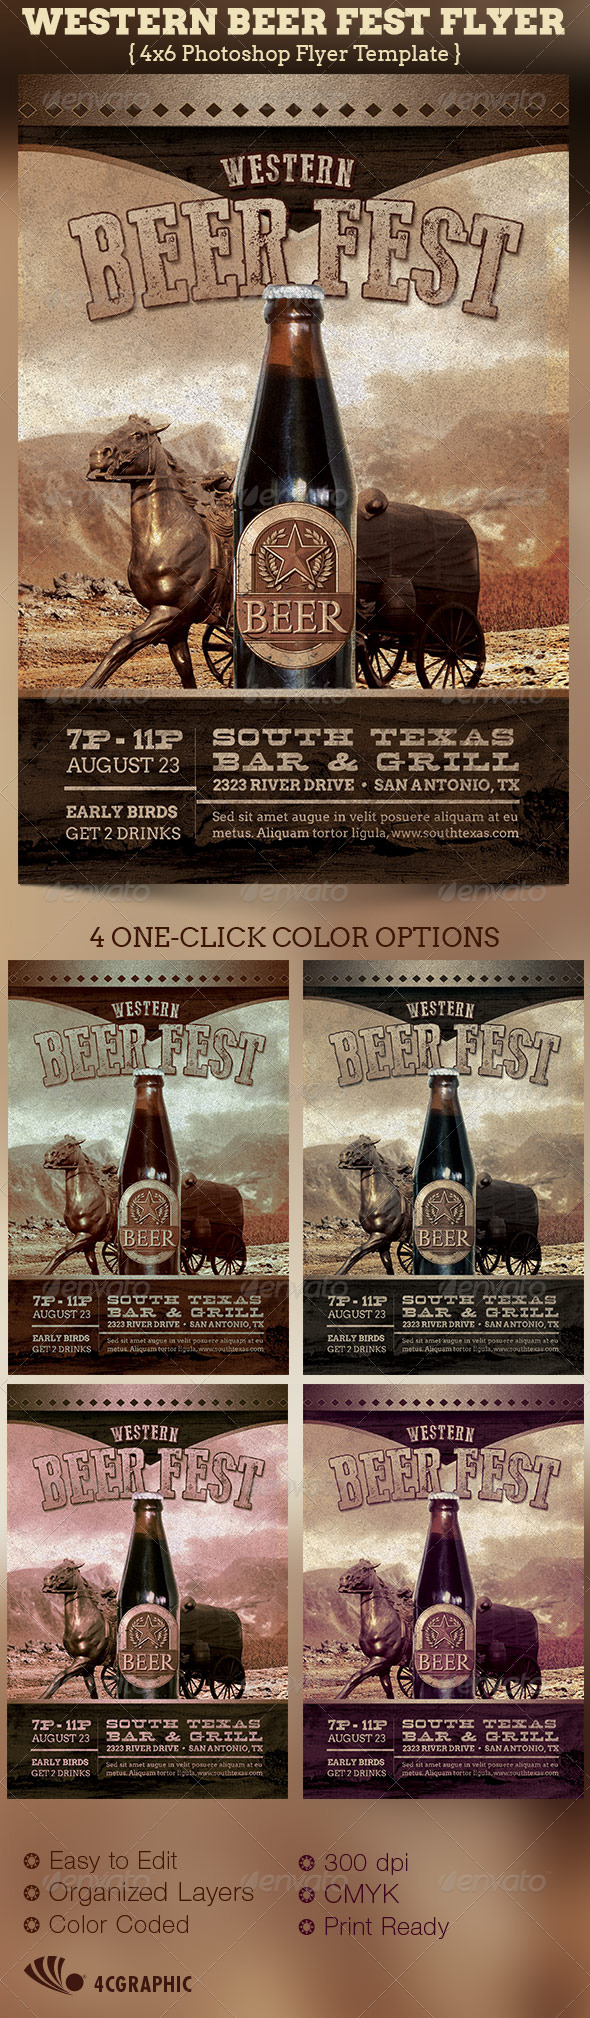 GraphicRiver Western Beer Fest Flyer Template 5181951